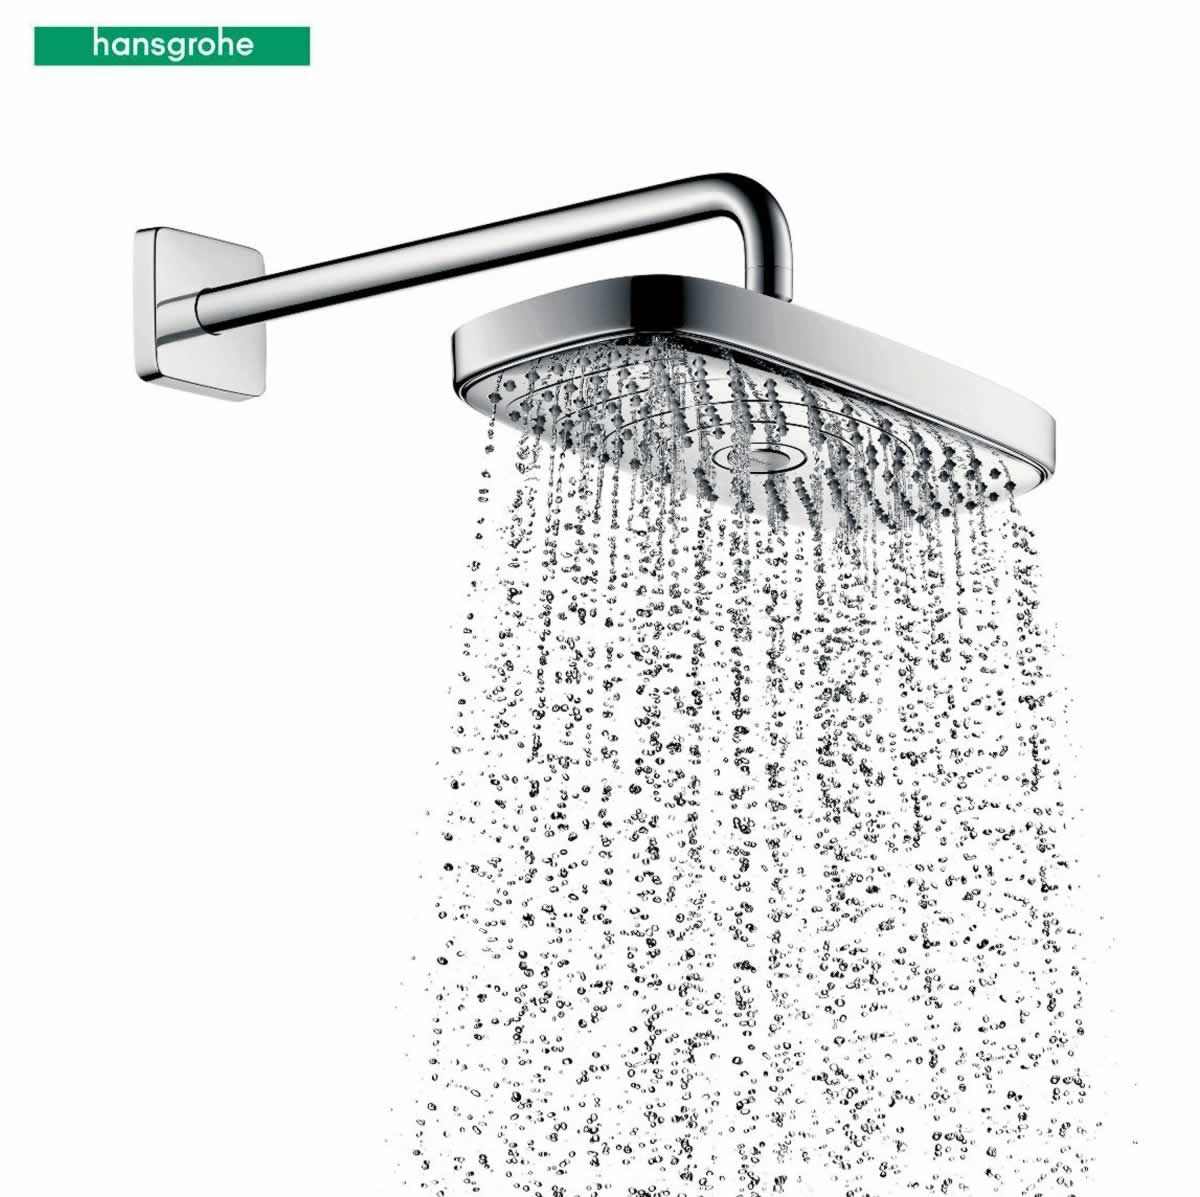 hansgrohe raindance select e 300 2jet overhead shower. Black Bedroom Furniture Sets. Home Design Ideas